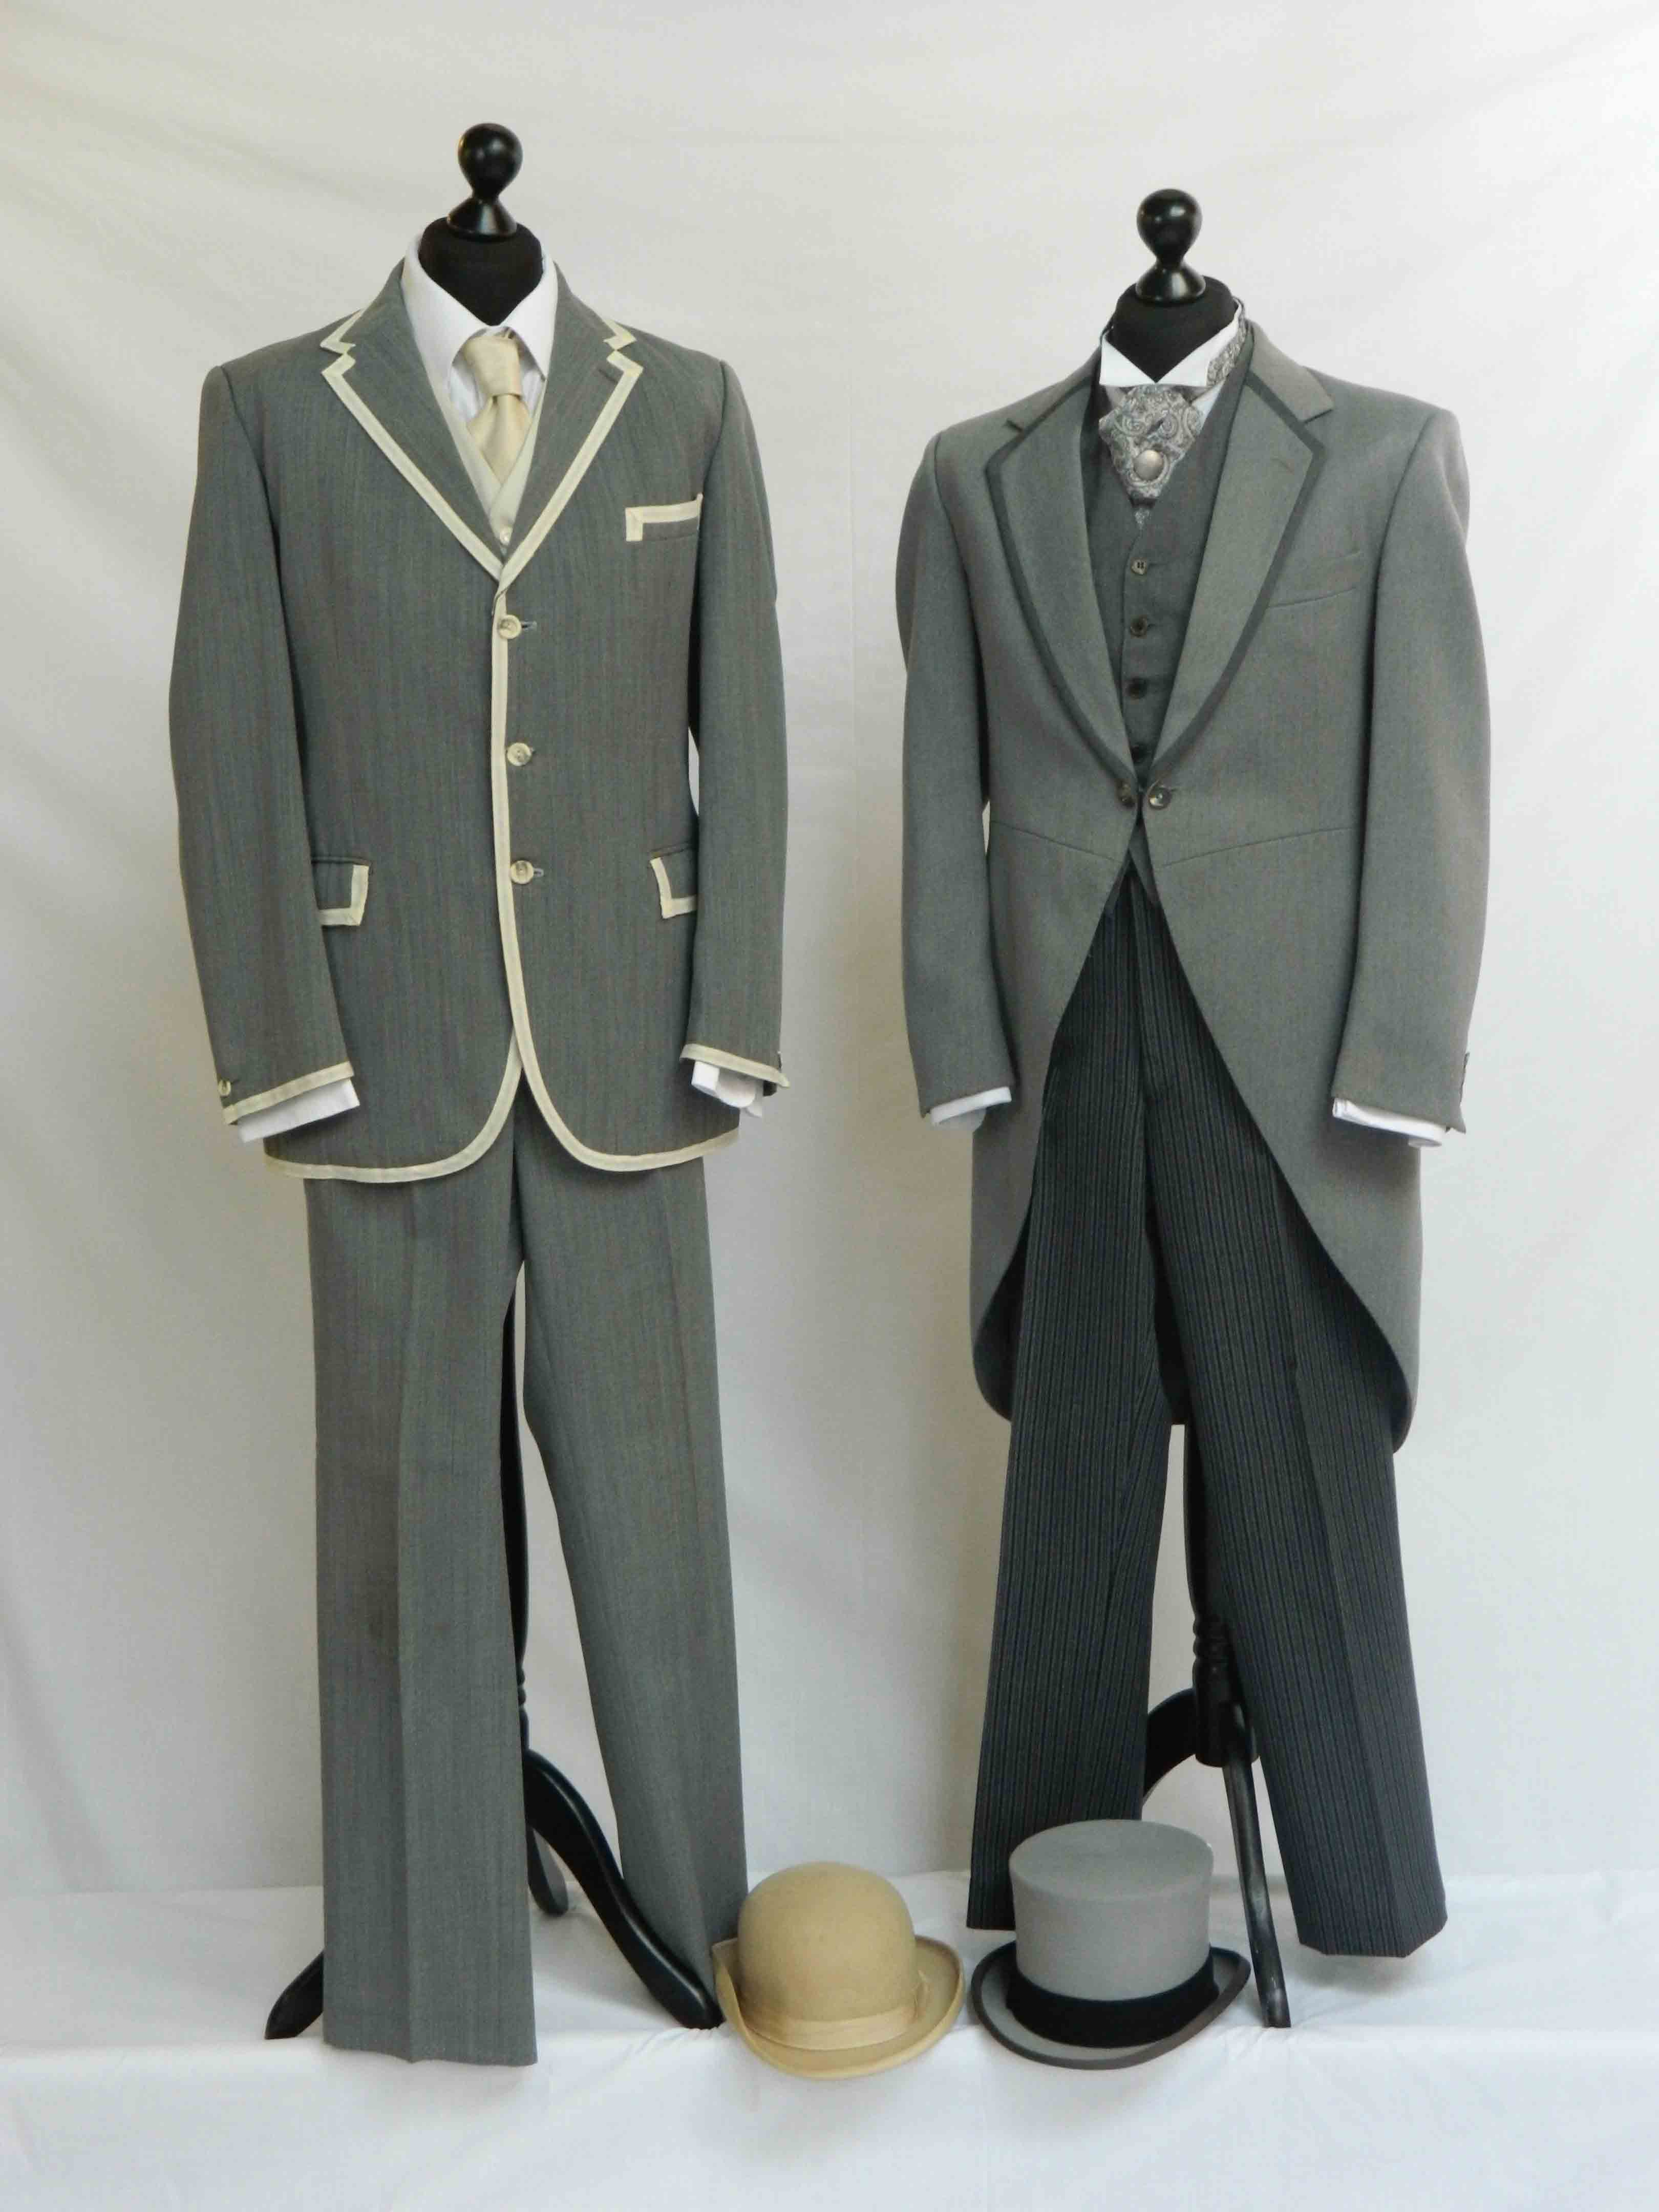 My Fair Lady Costumes 02